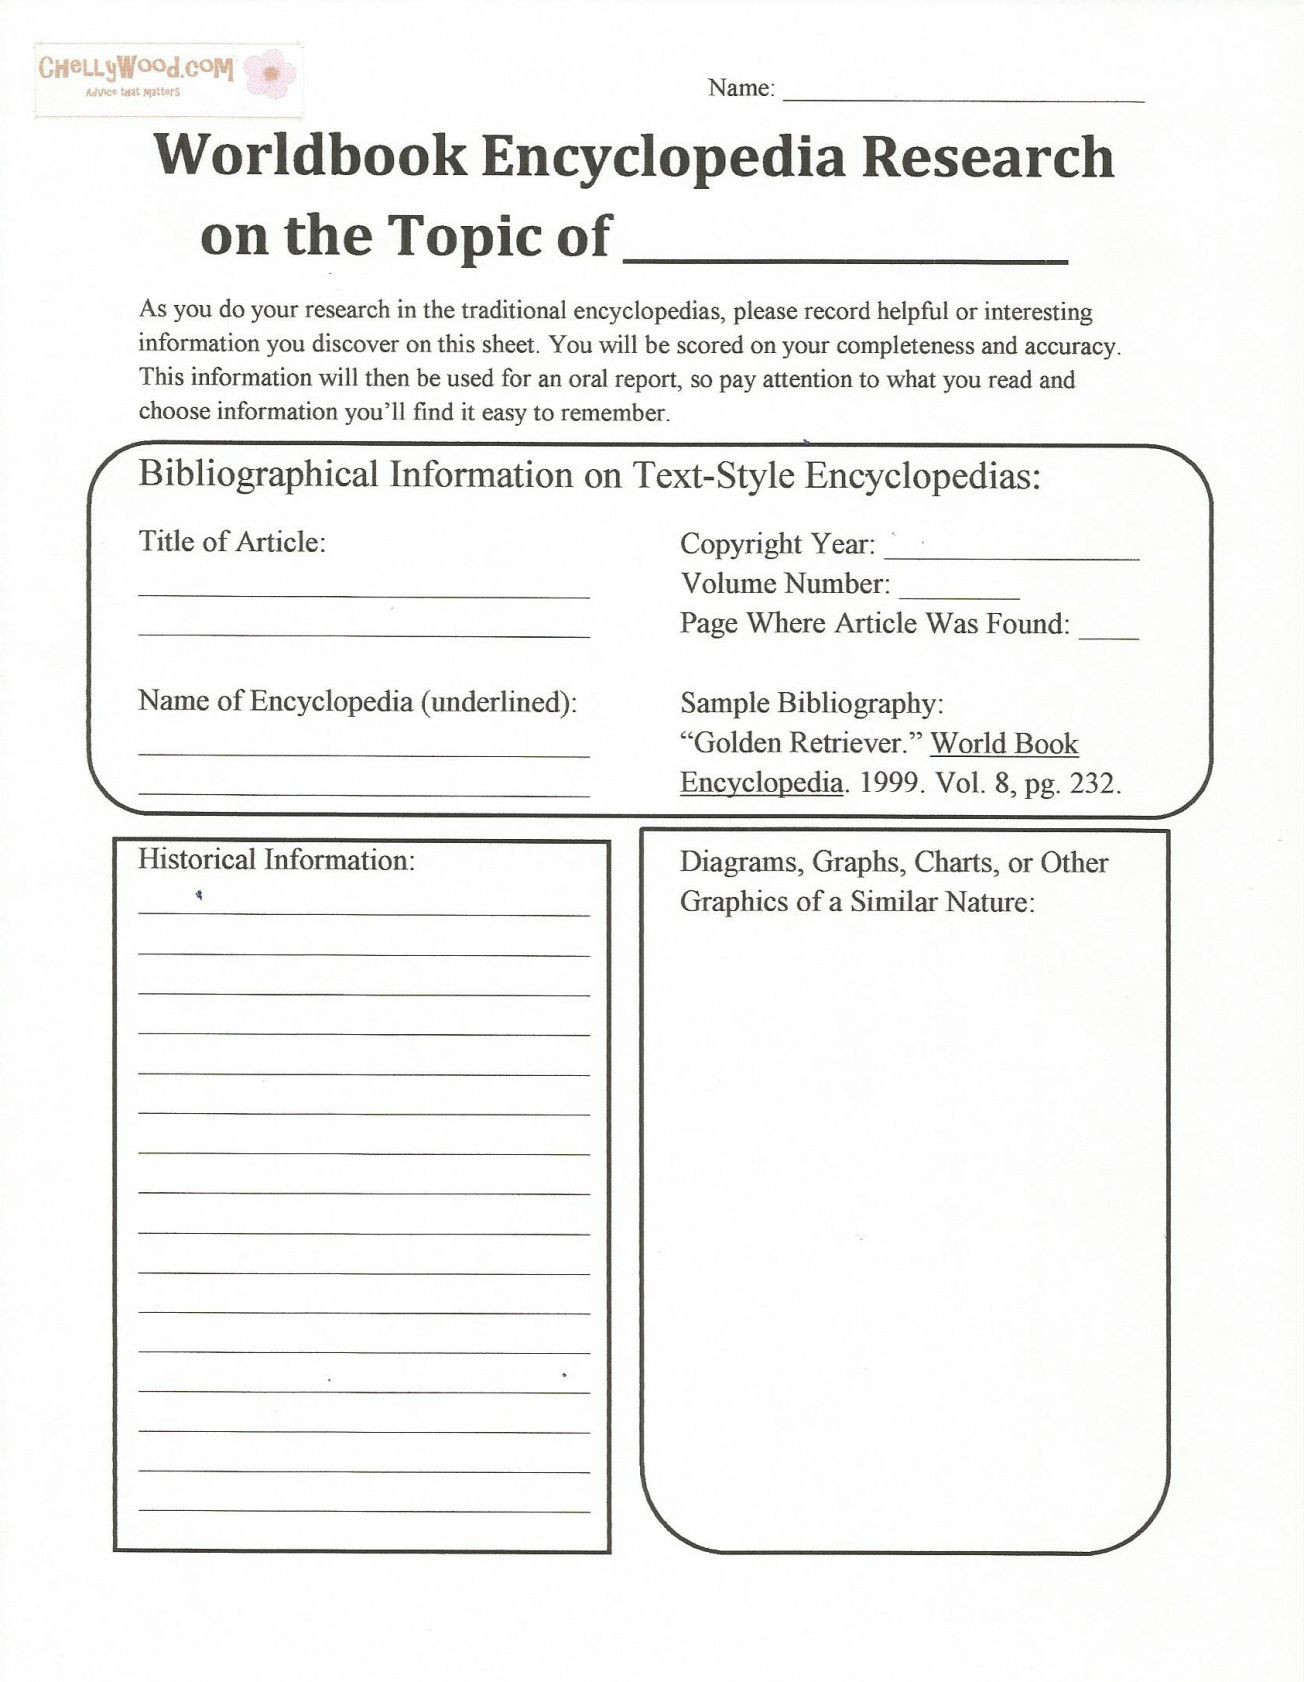 Citing sources Worksheet 5th Grade Free Printable Encyclopedia Handout for Teaching Research